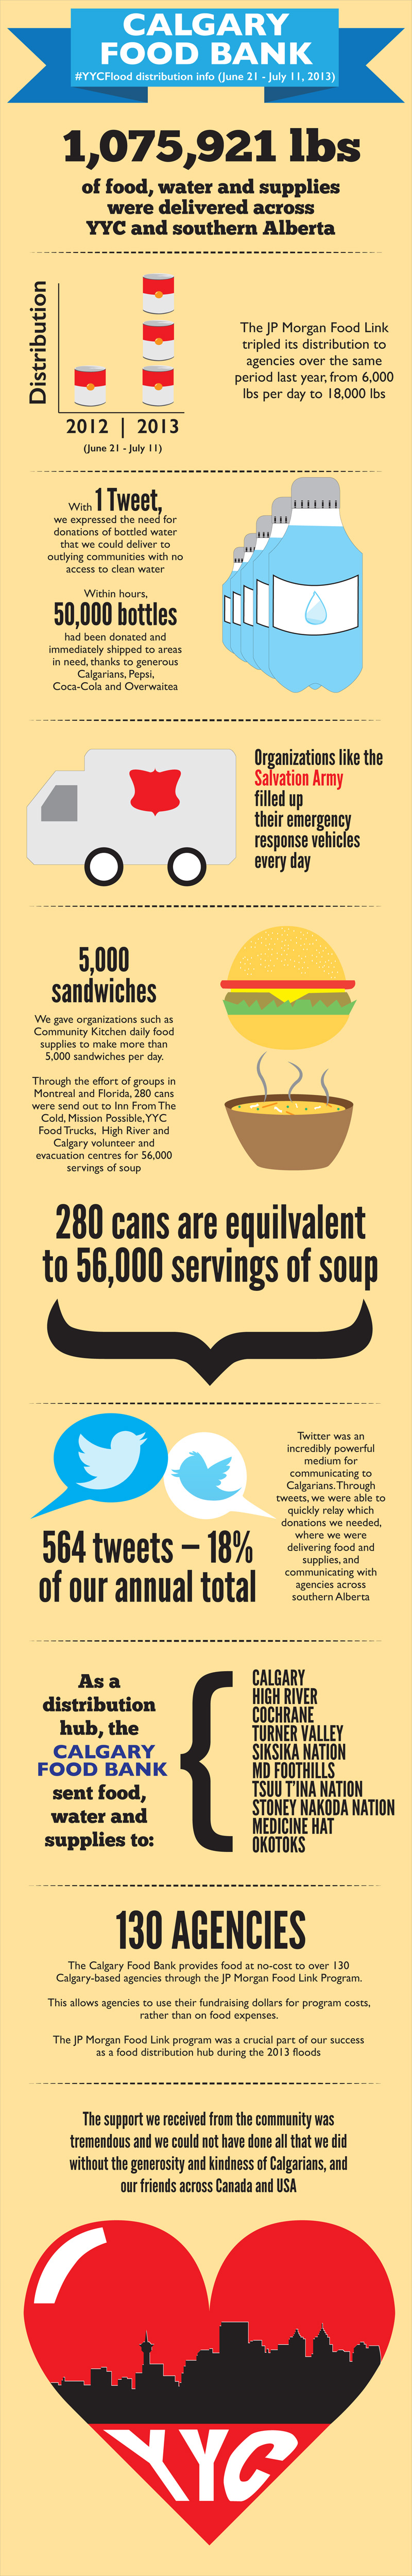 calgary food bank infographic flood yyc 2013